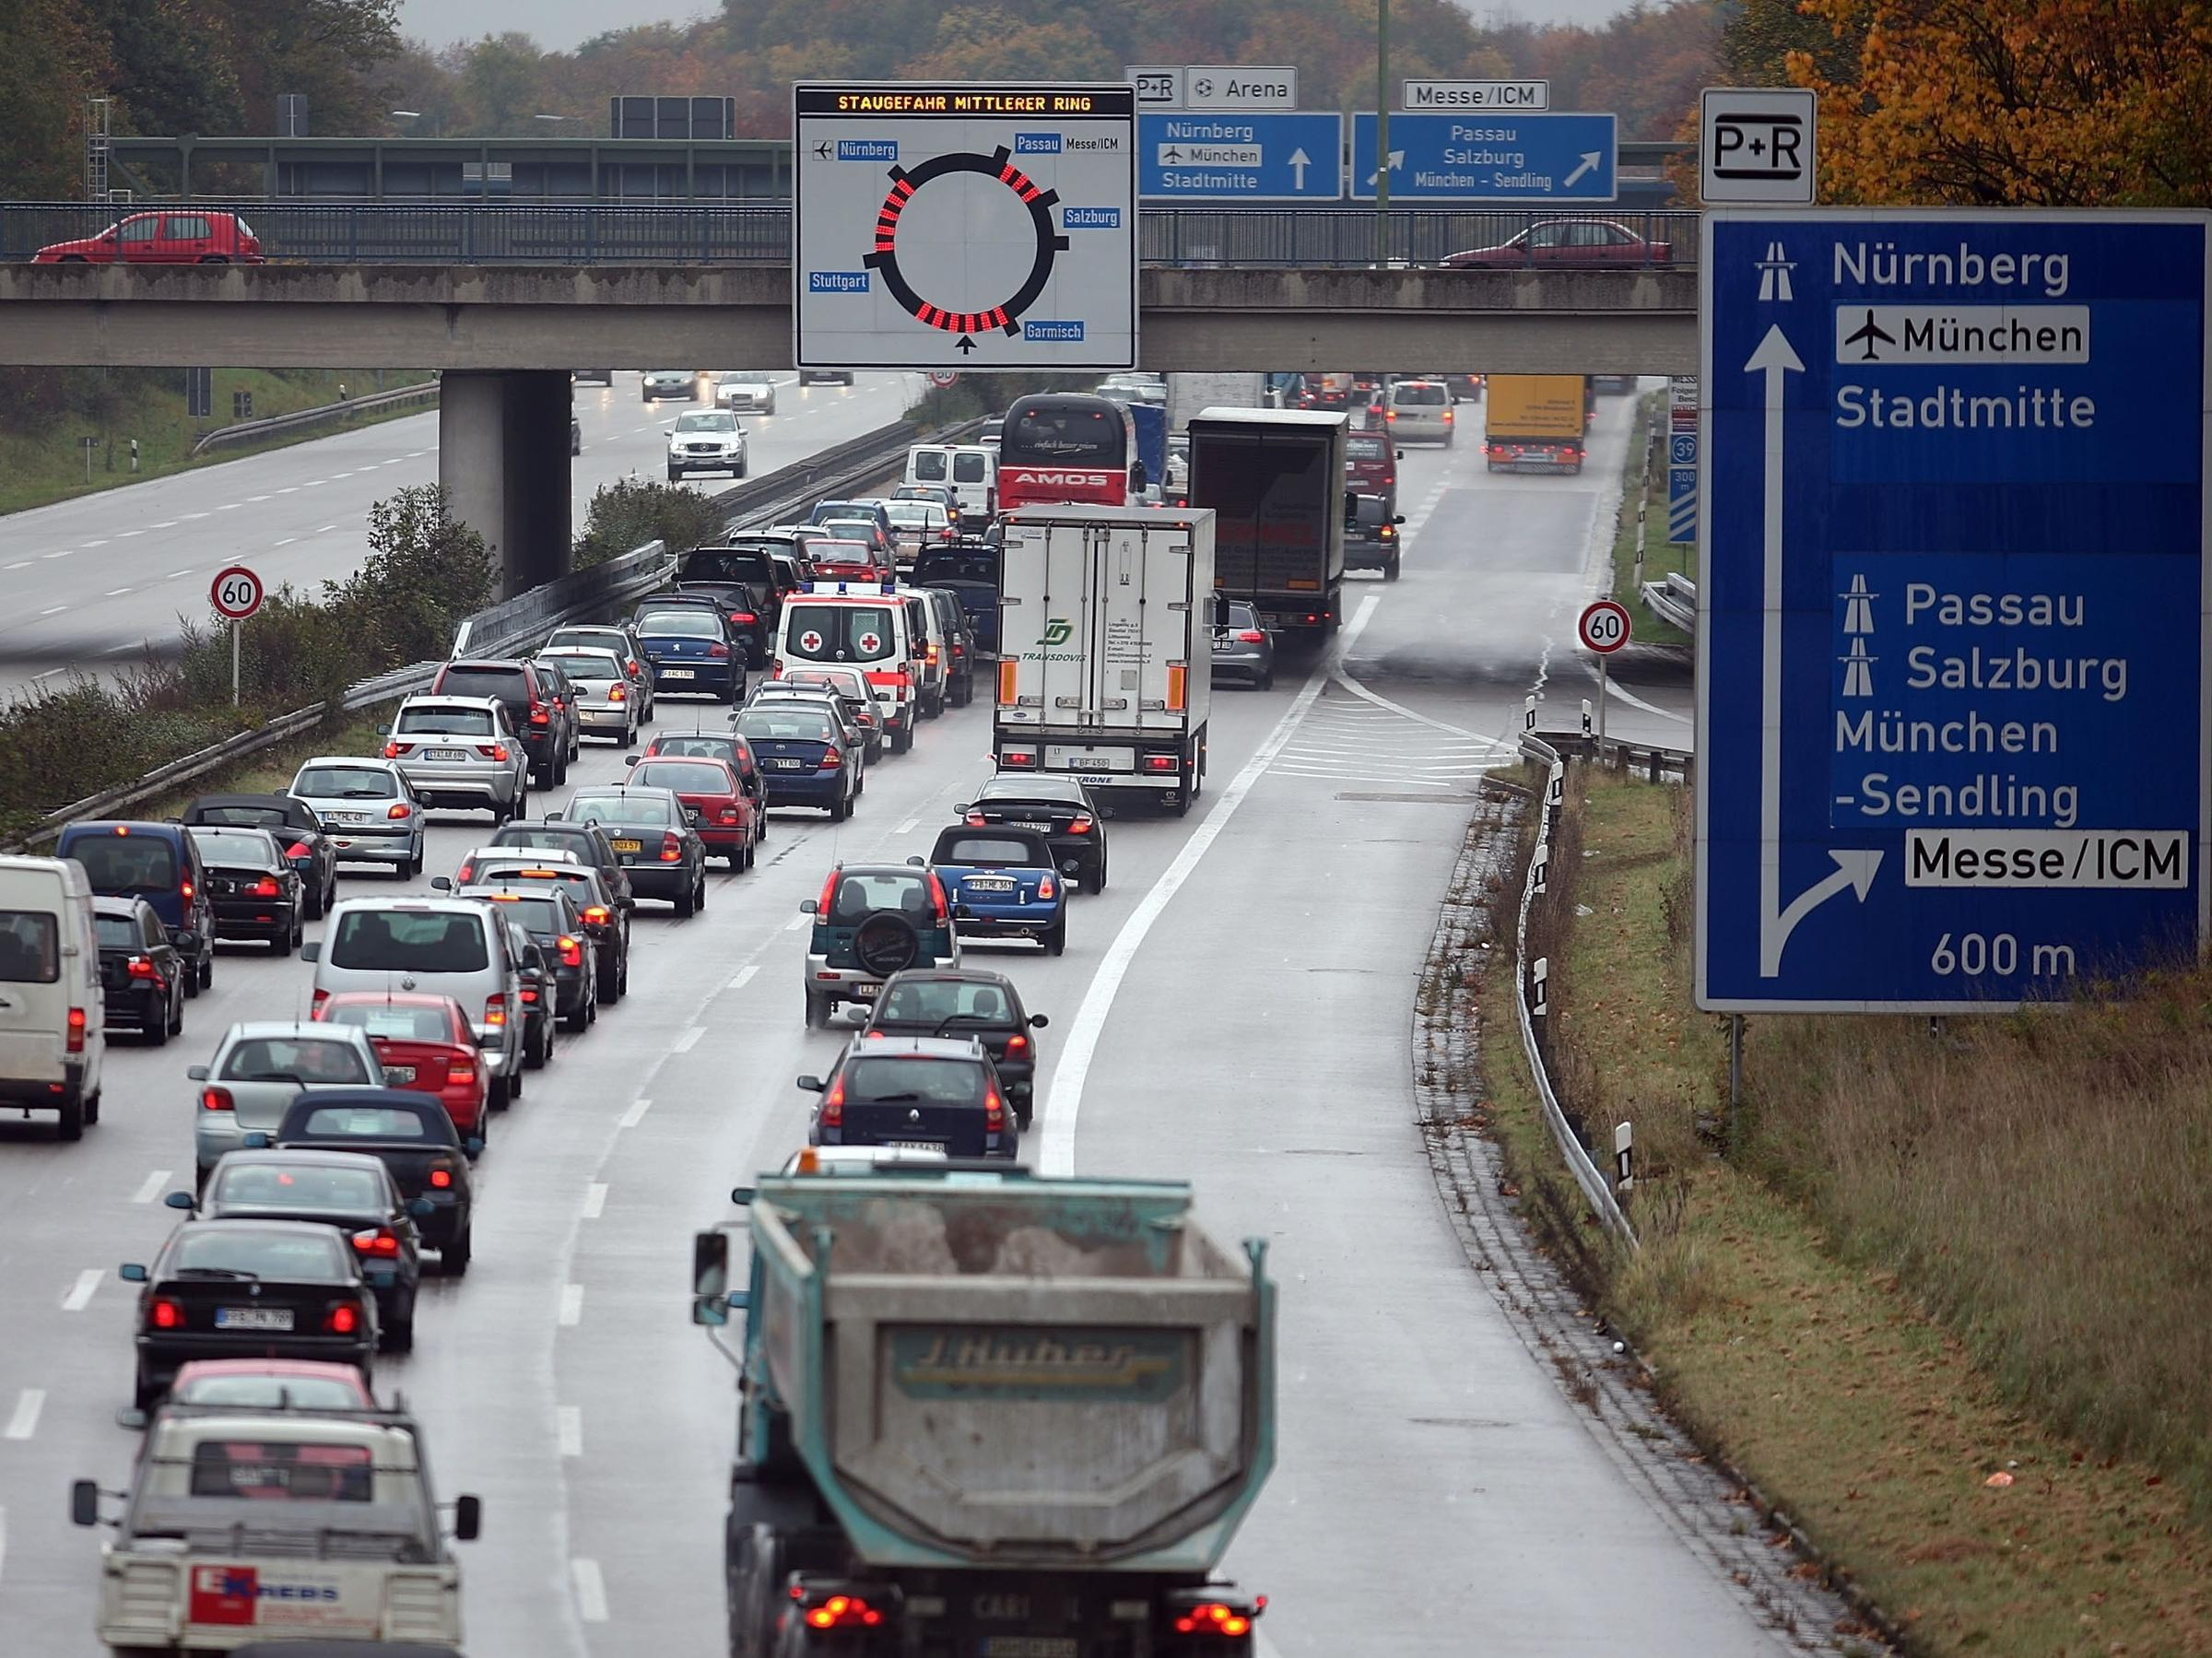 To meet EU air pollution targets Germany may make public transit free in cities struggling with poor air quality. Here a Munich traffic jam in 2007